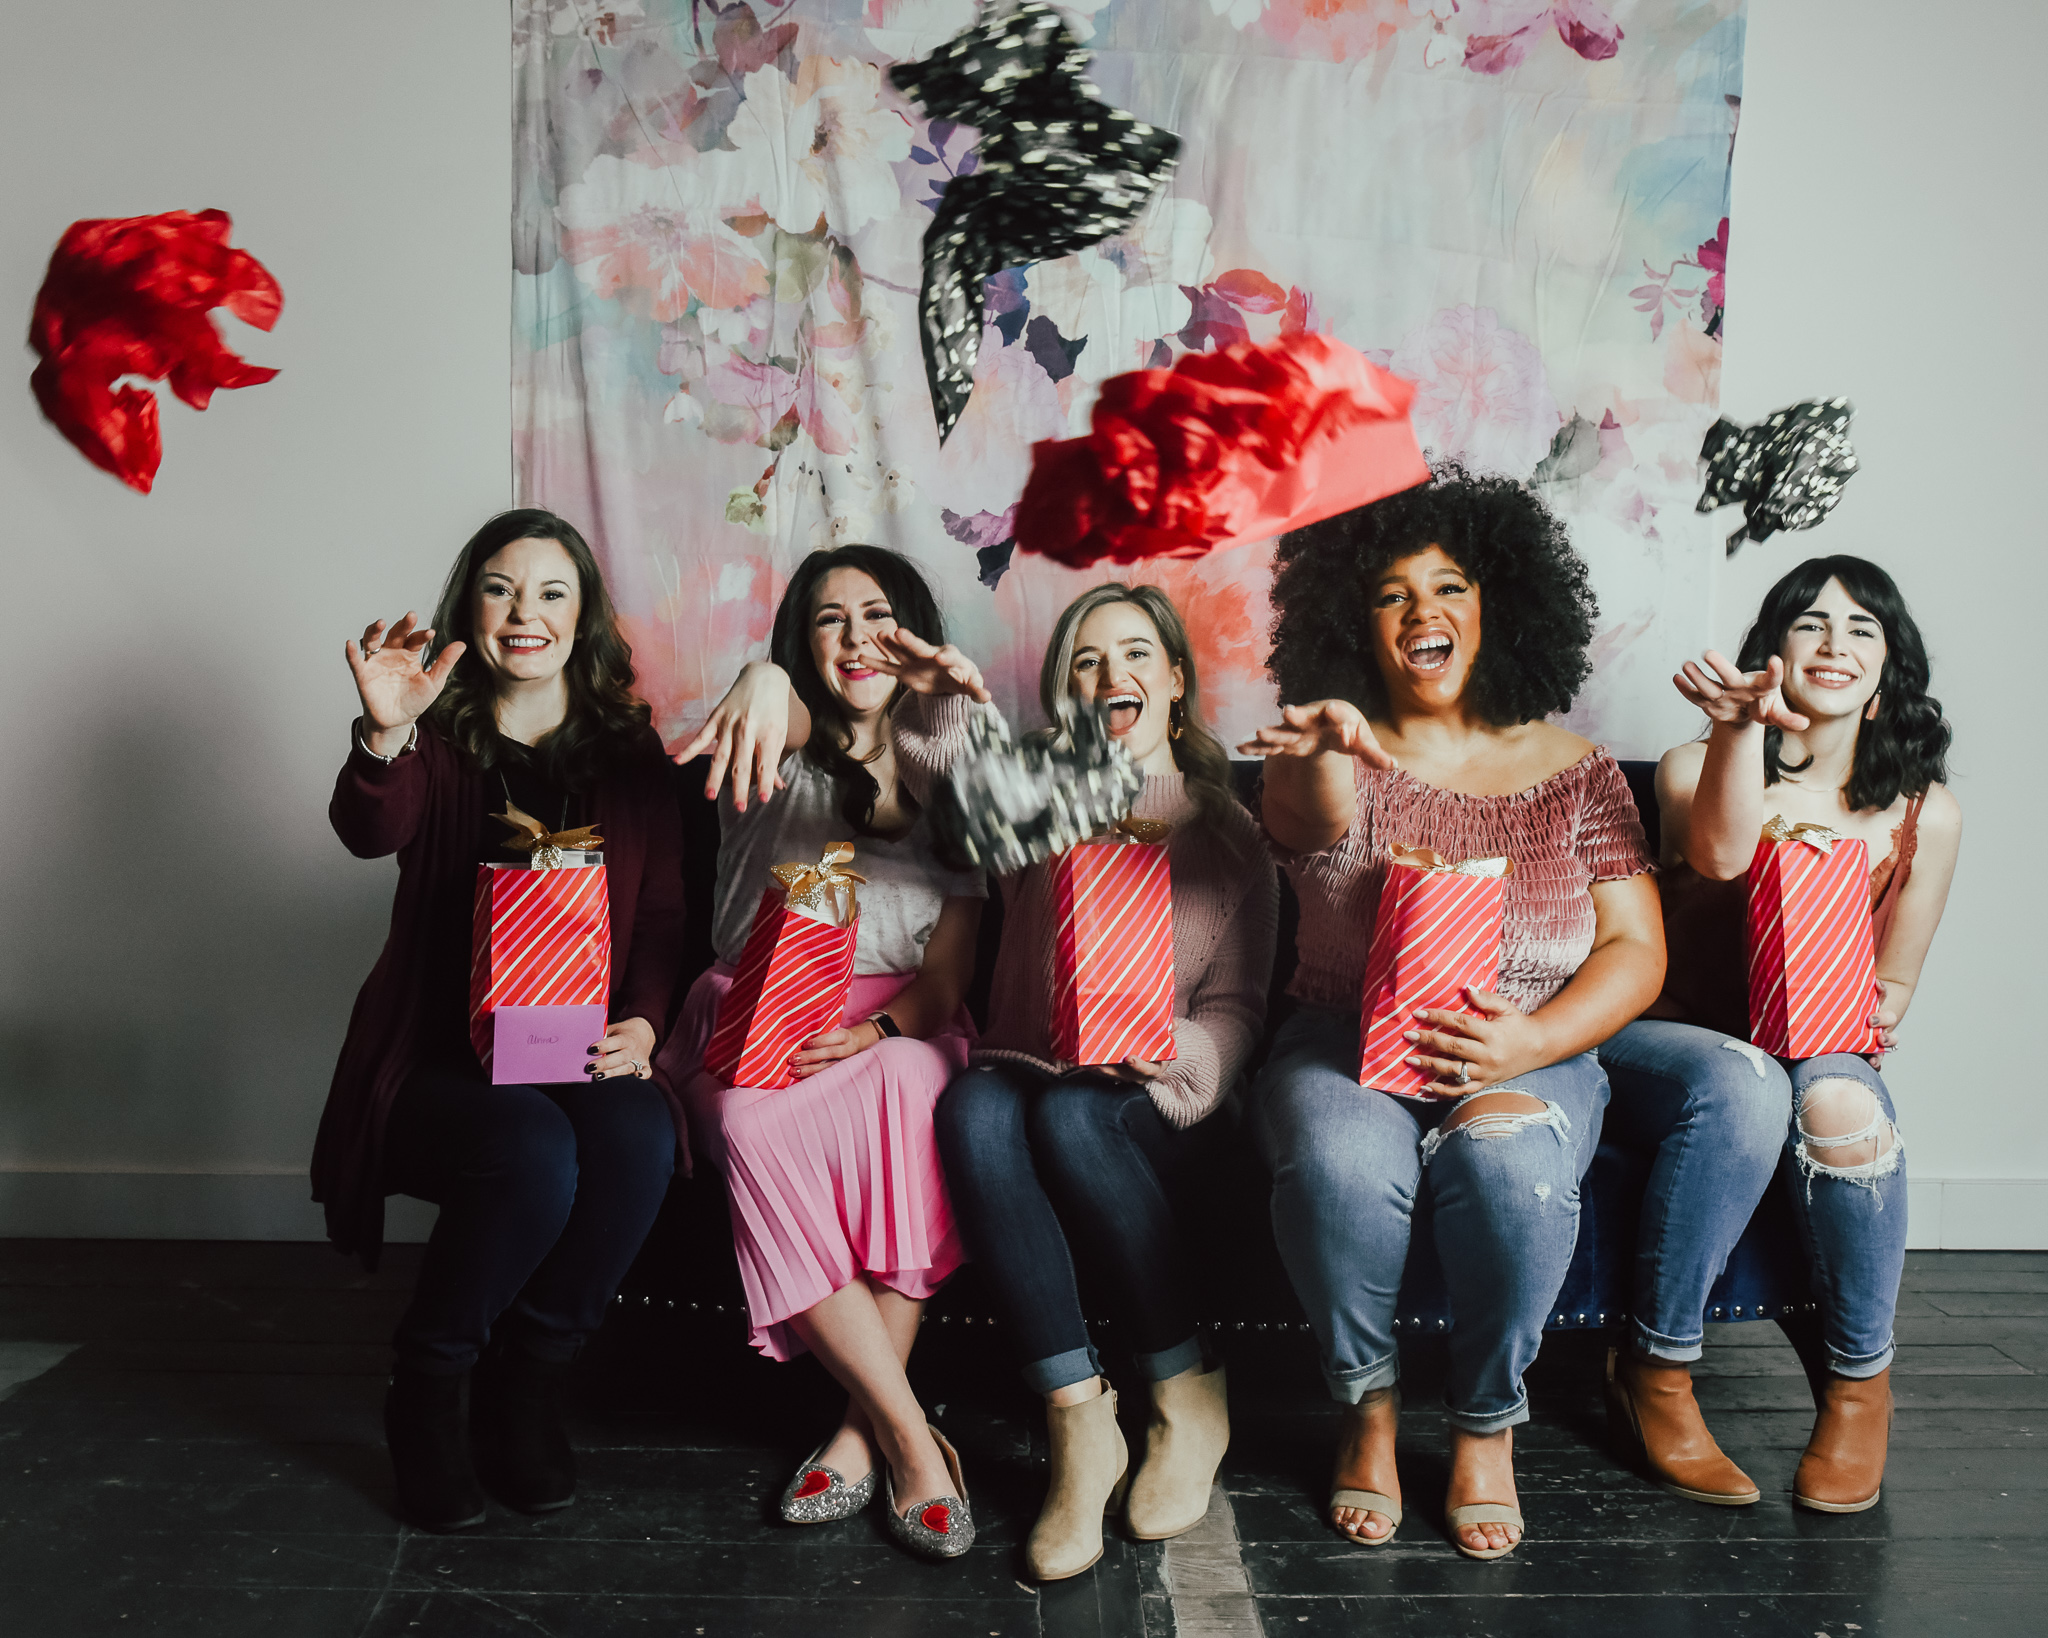 5-IDEAS-FOR-HOSTING-THE-ULTIMATE-GALENTINE'S-DAY-PARTY-5.jpg